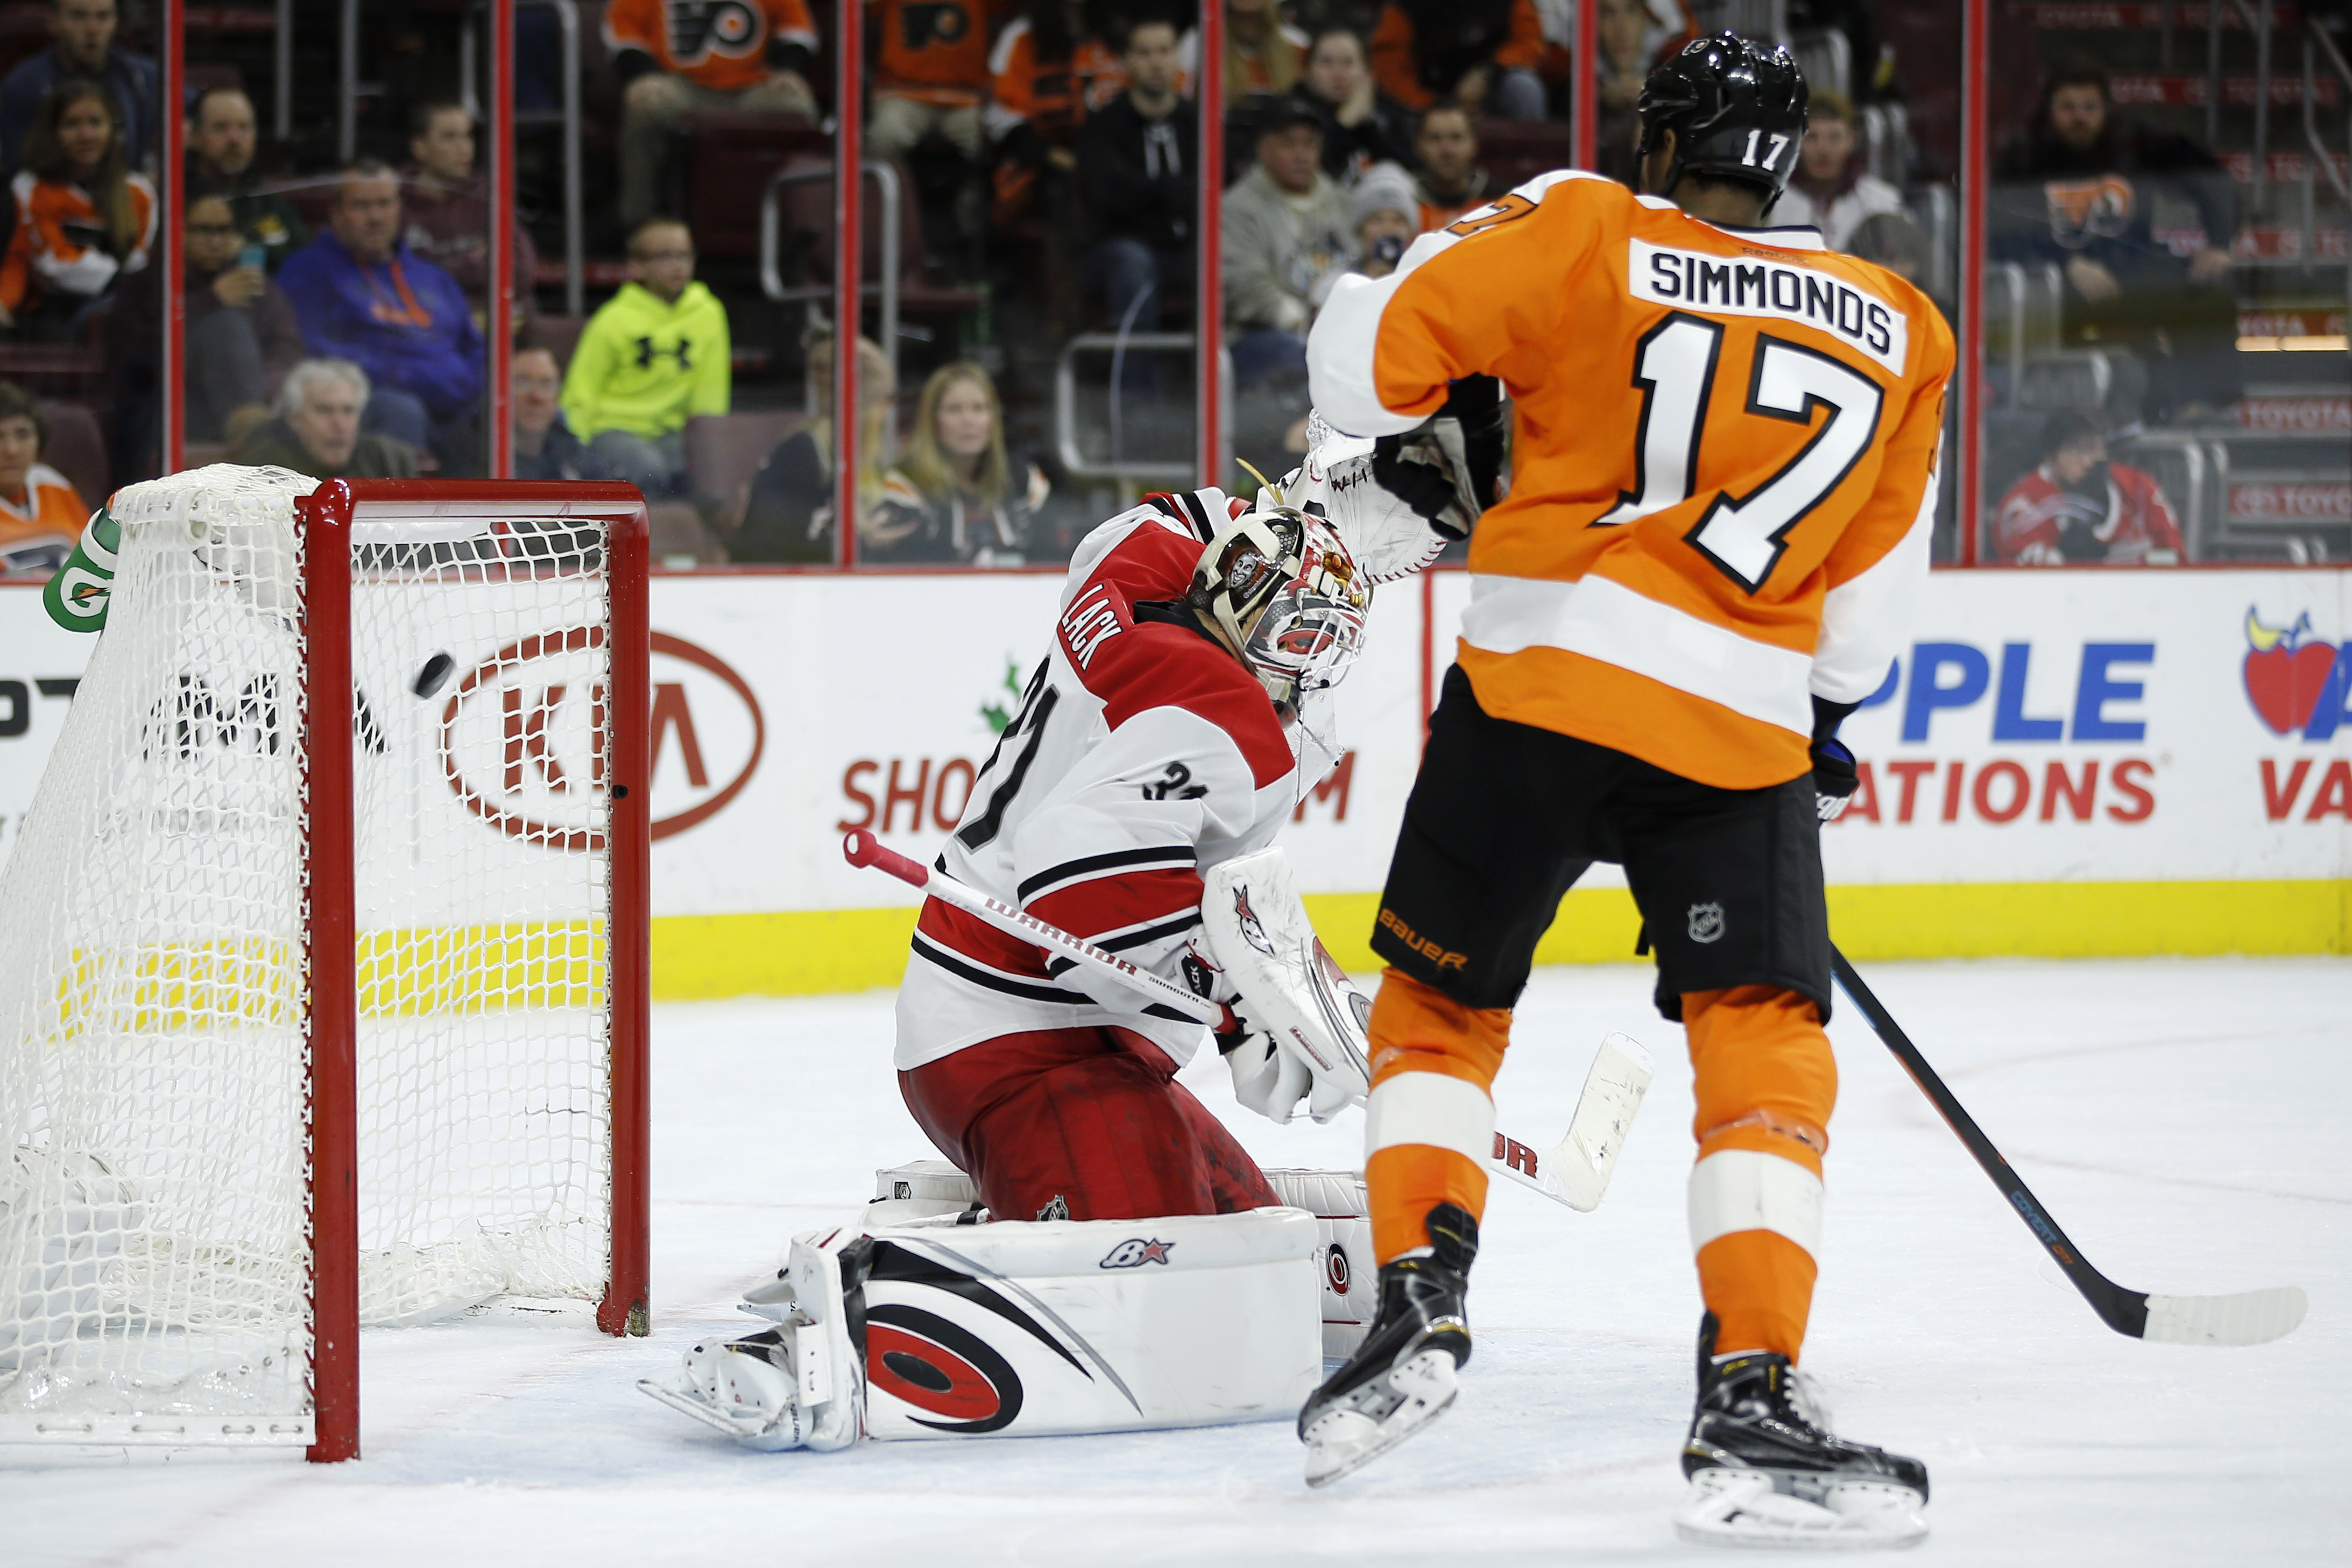 Carolina Hurricanes' Eddie Lack, left, cannot stop the game-winning goal by Philadelphia Flyers' Shayne Gostisbehereas as Wayne Simmonds (17) looks on during overtime of an NHL hockey game against the Carolina Hurricanes, Monday, Nov. 23, 2015, in Philade